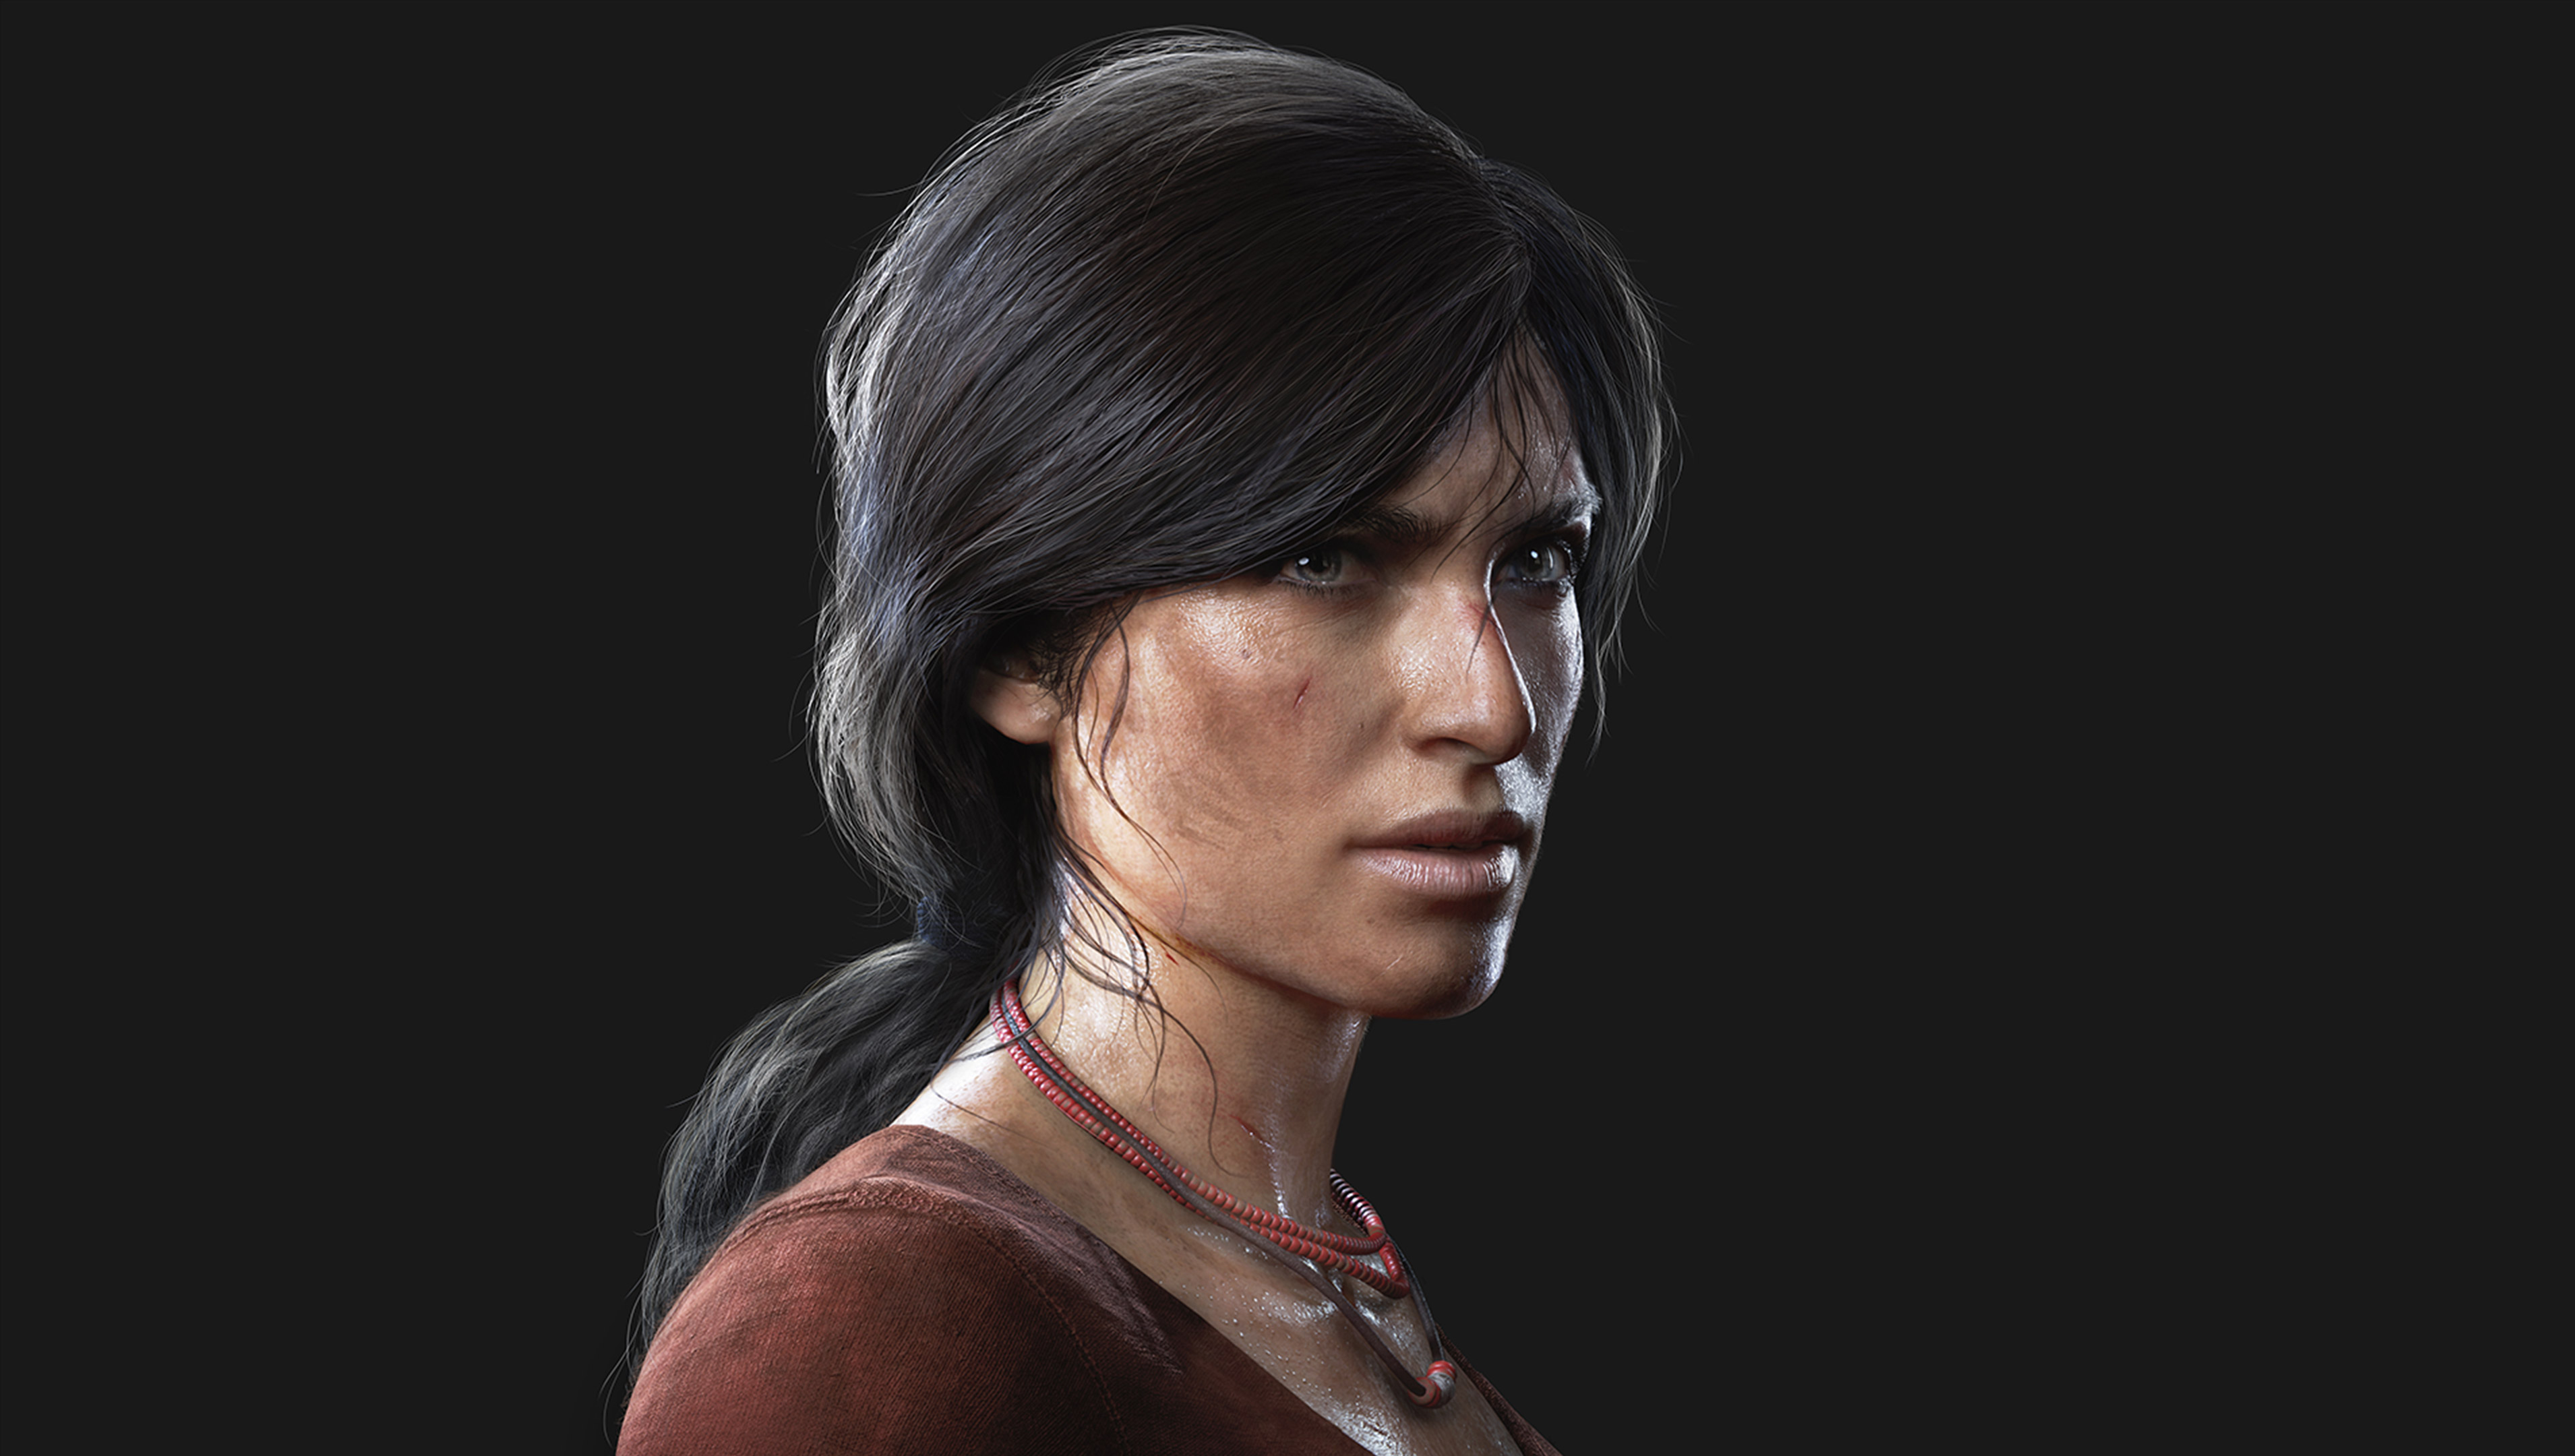 Chloe Frazer Uncharted The Lost Legacy Wallpaper Hd Games 4k